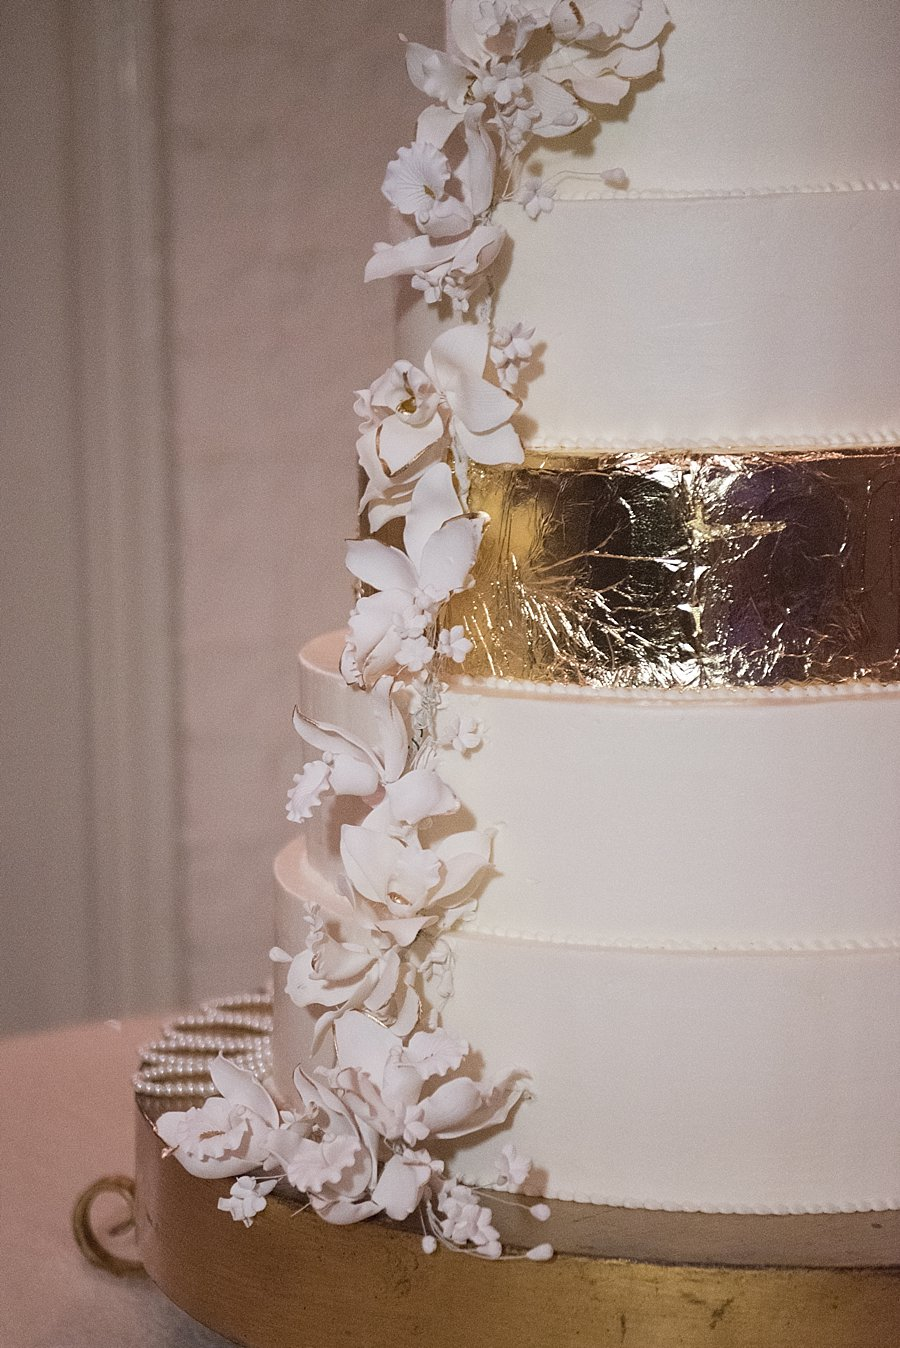 La Louisiane Bakery | Gold foil Cake | Classic black and white black-tie wedding at home | Sapphire Events | Jacqueline Dallimore Photo | NYE Wedding | Estate Wedding | Tented Wedding | Monique Lhuillier gown | Blush Wedding dress | New Year's Eve wedding